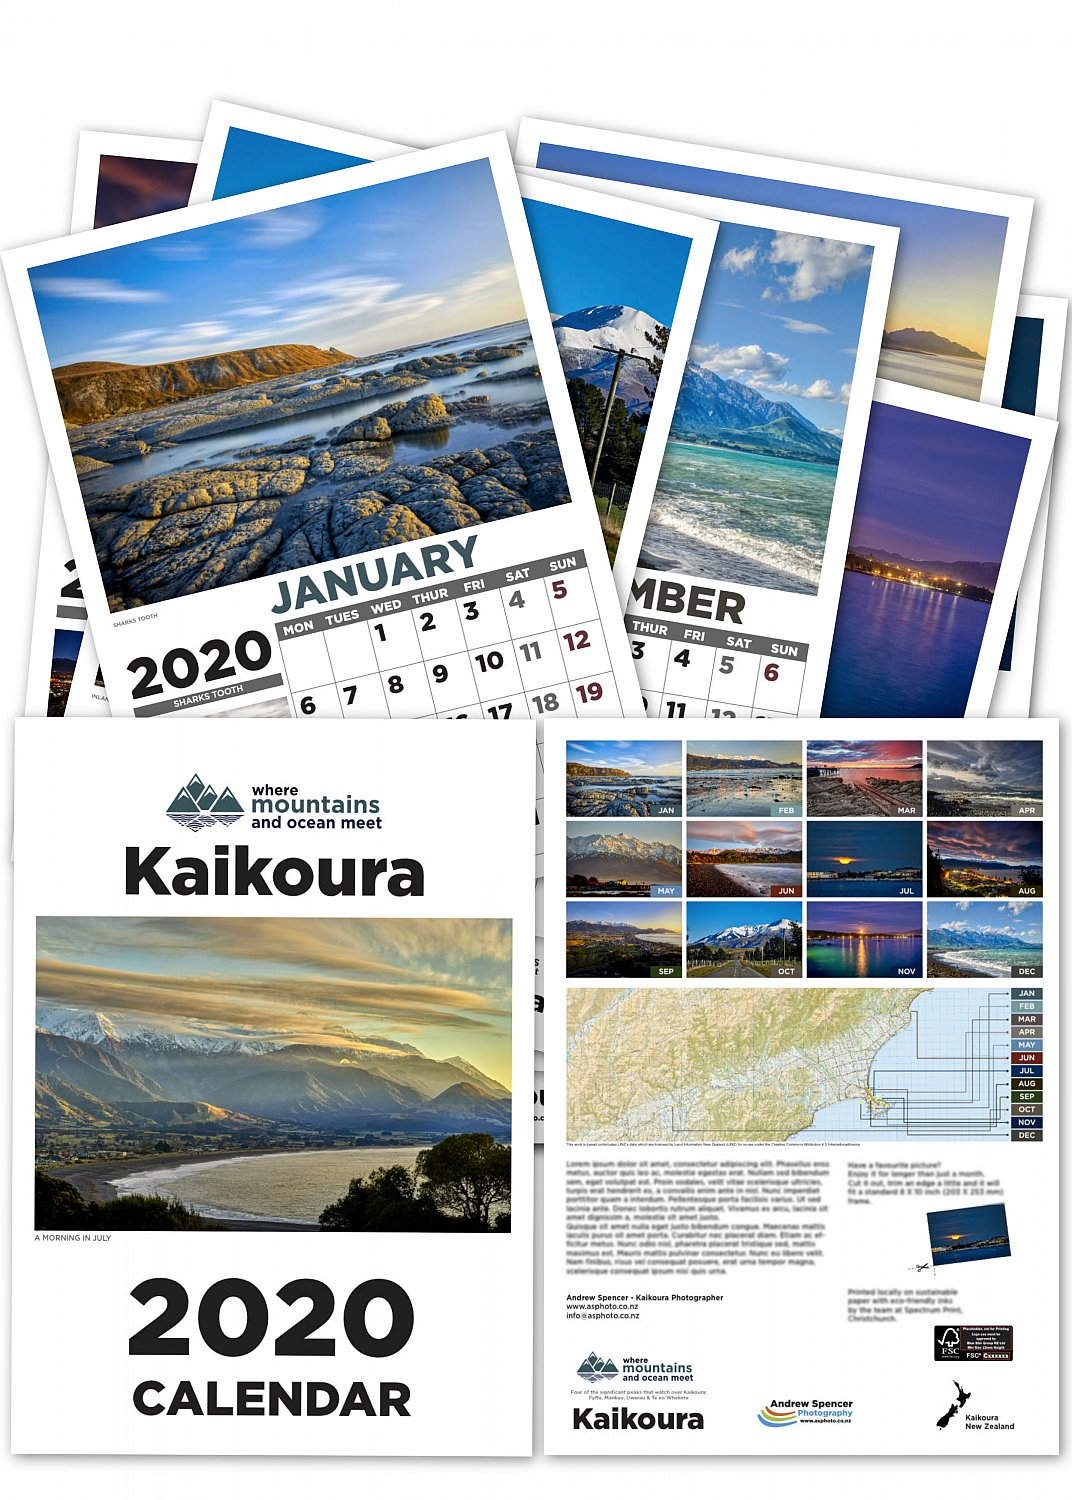 The Kaikoura Calendar 2020  | 2020-calendar-for-web.jpg